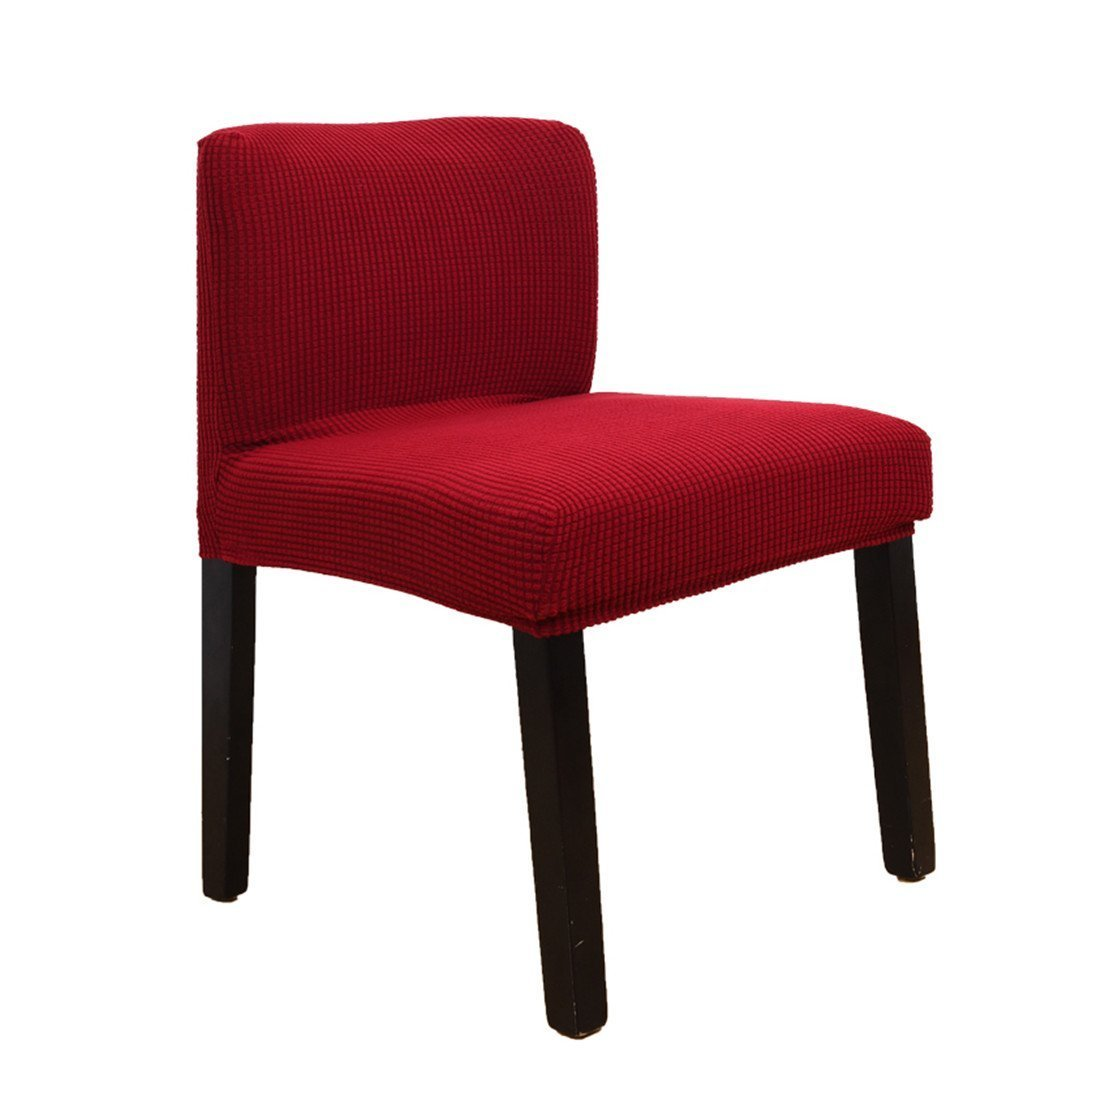 G-Champsolar Stretch Chair Cover Slipcovers for Short Back Chair Bar Stool Chair (Red)